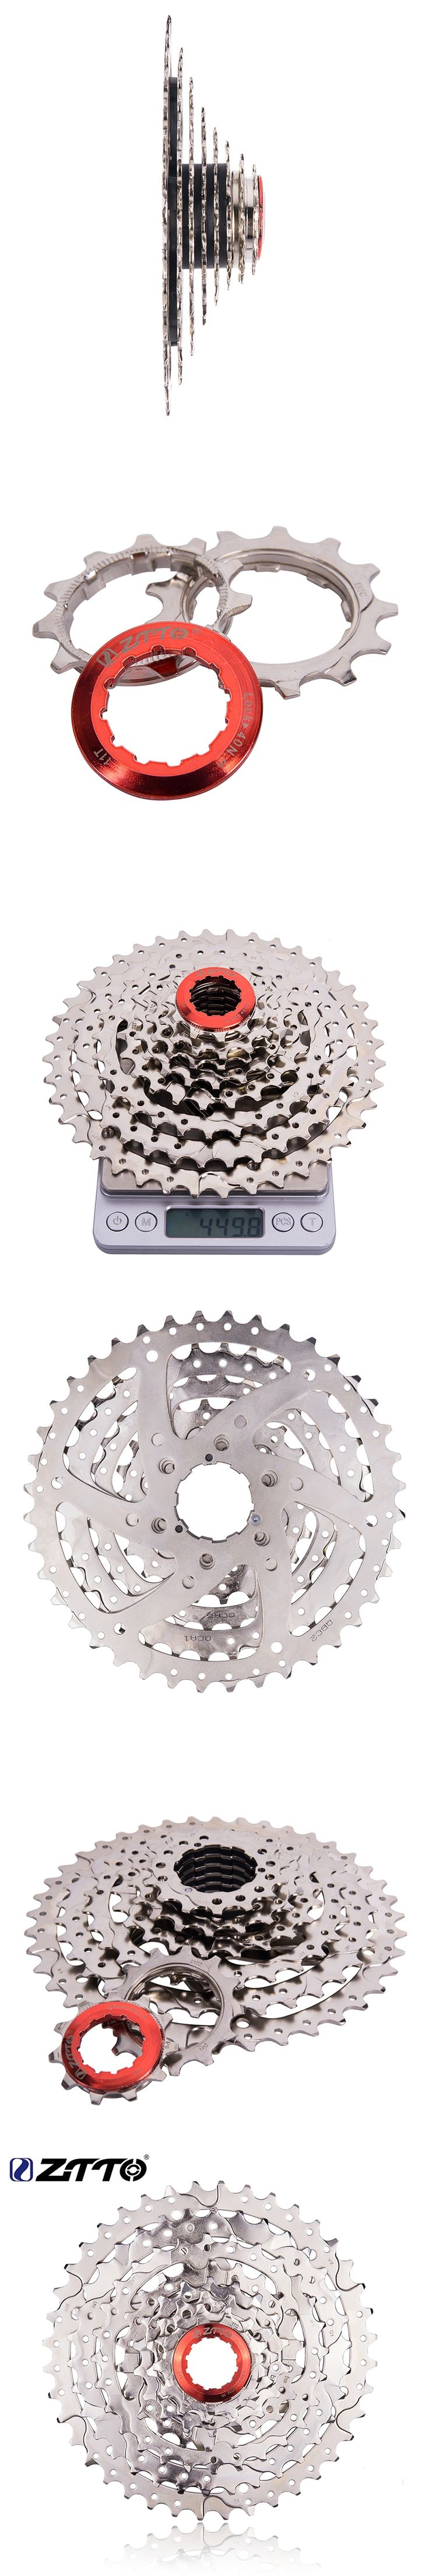 ZTTO MTB Bike 8 Speed Sprockets Freewheel 8s 24s Velo 11-40T Wide Ratio Steel Cassette For Shimano ALIVIO Sram X4 Bicycle Parts